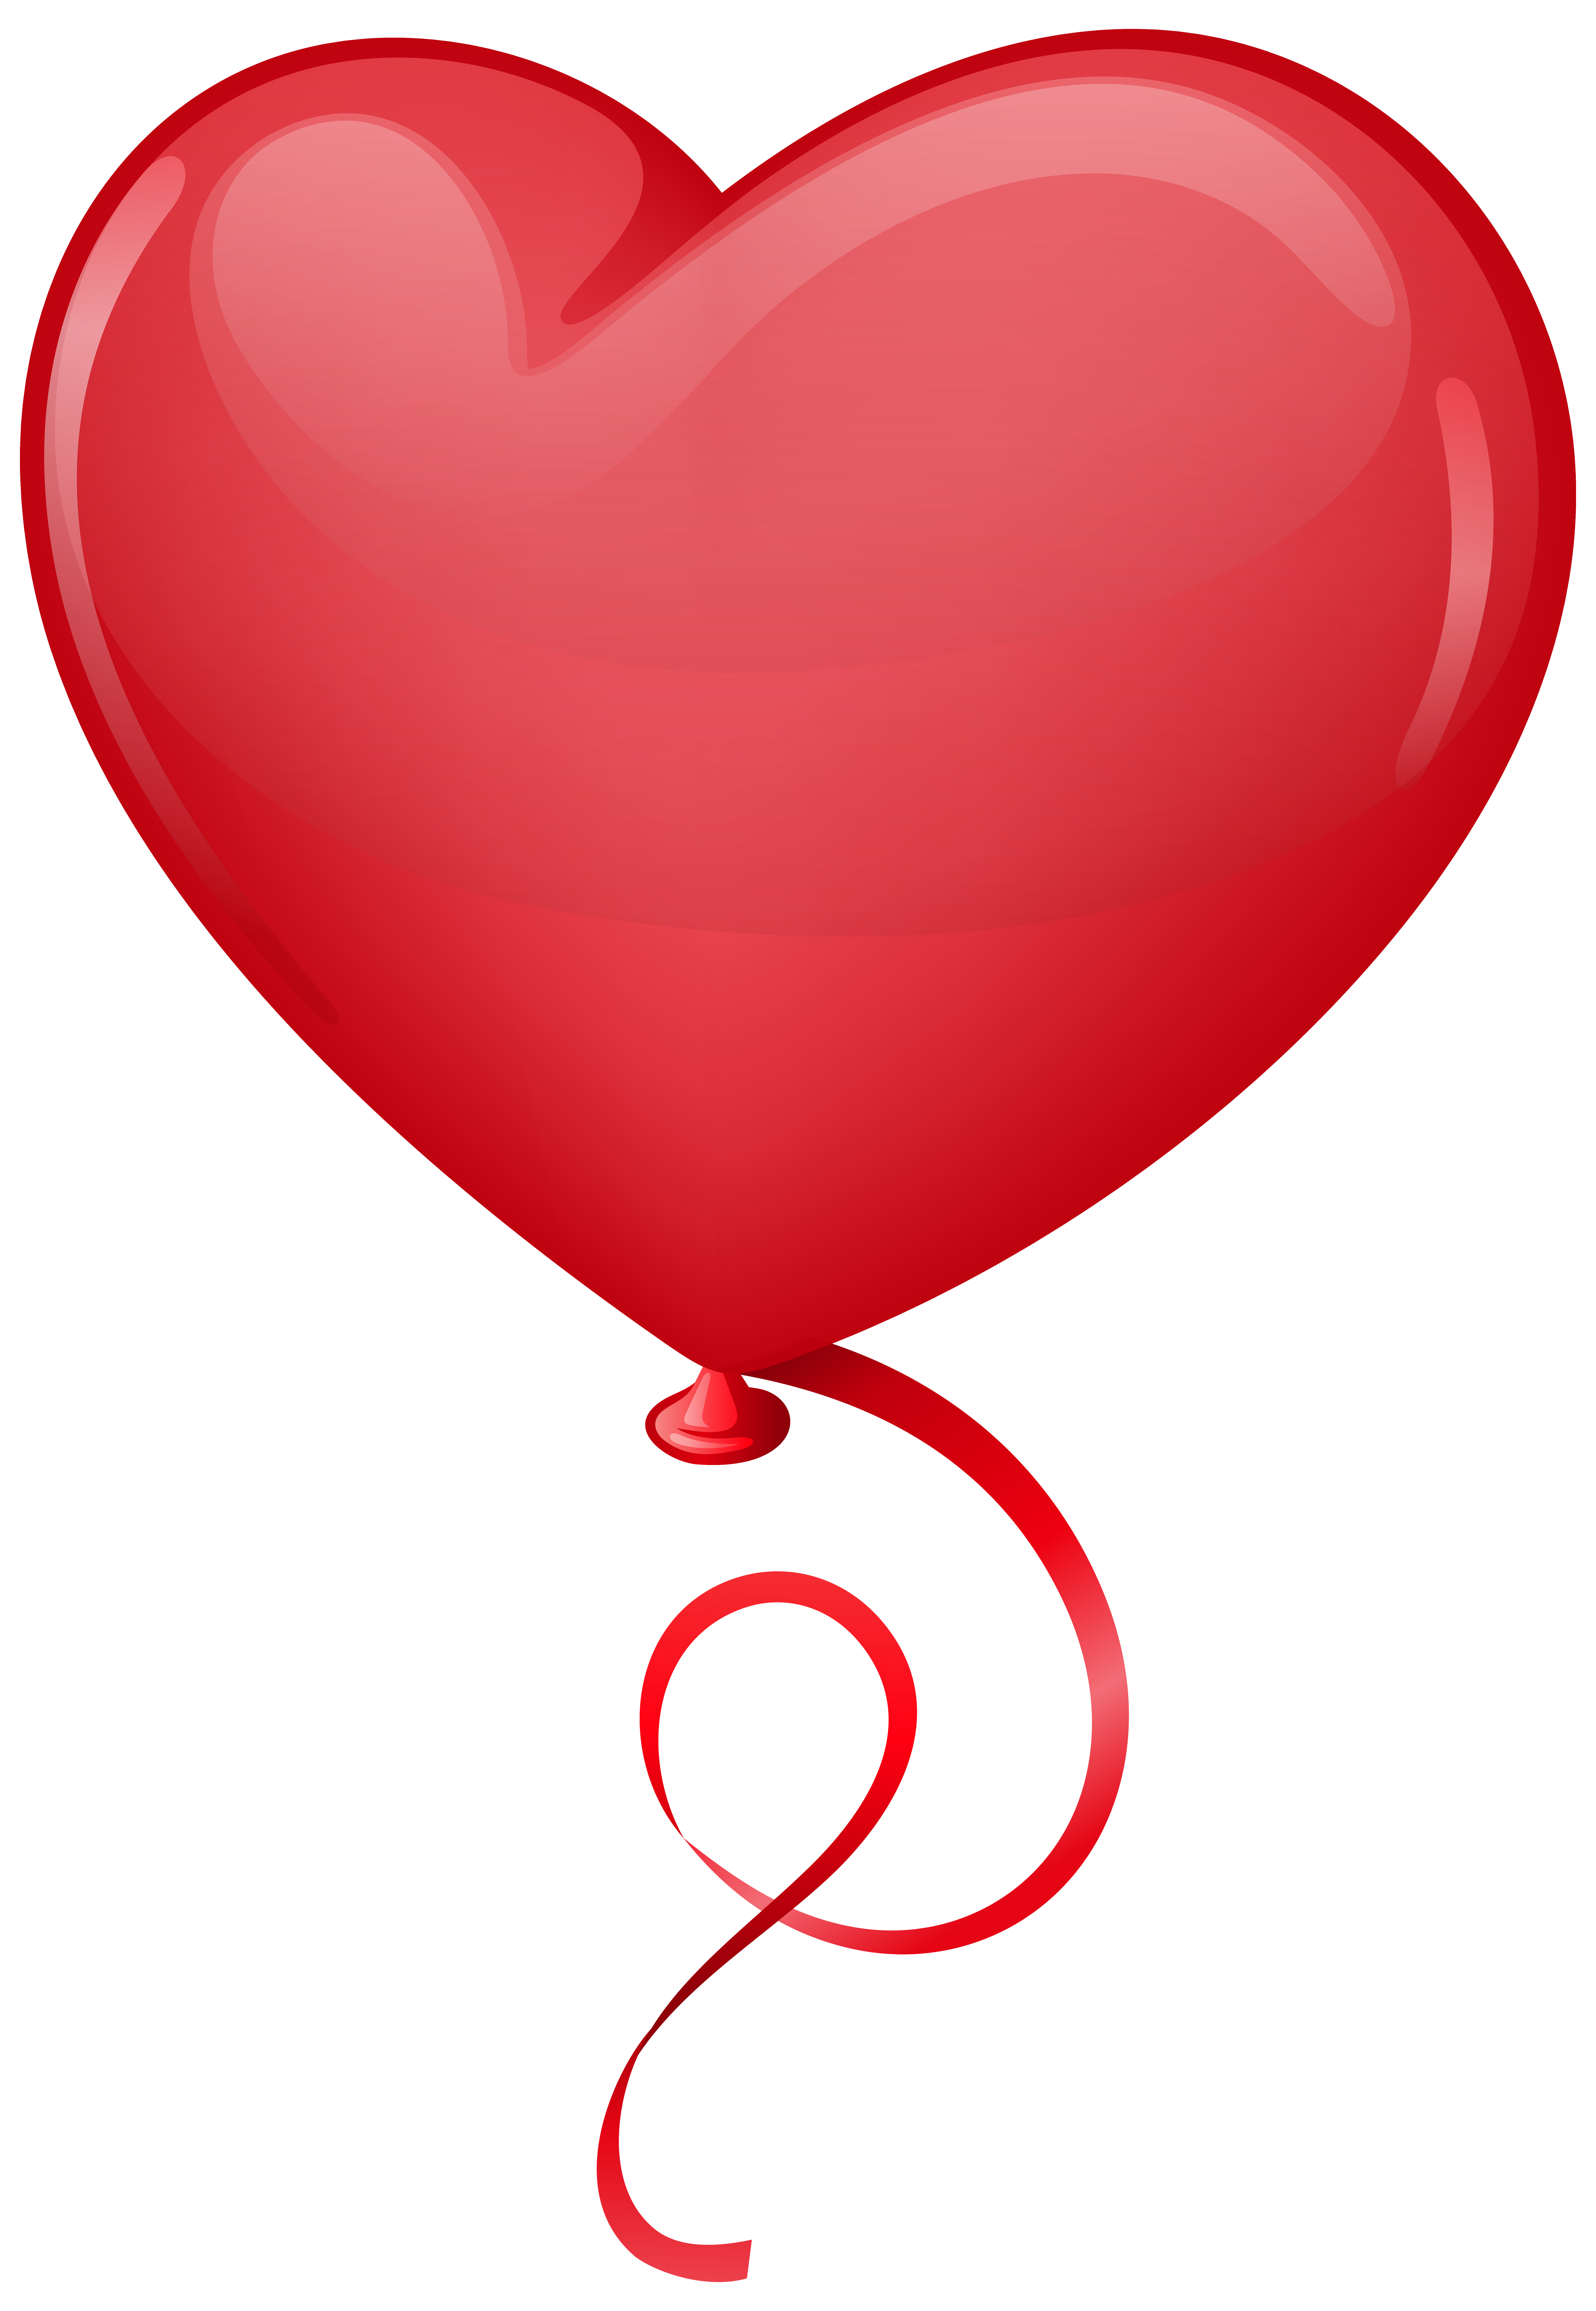 Red Heart Balloon Clip Art PNG Image.